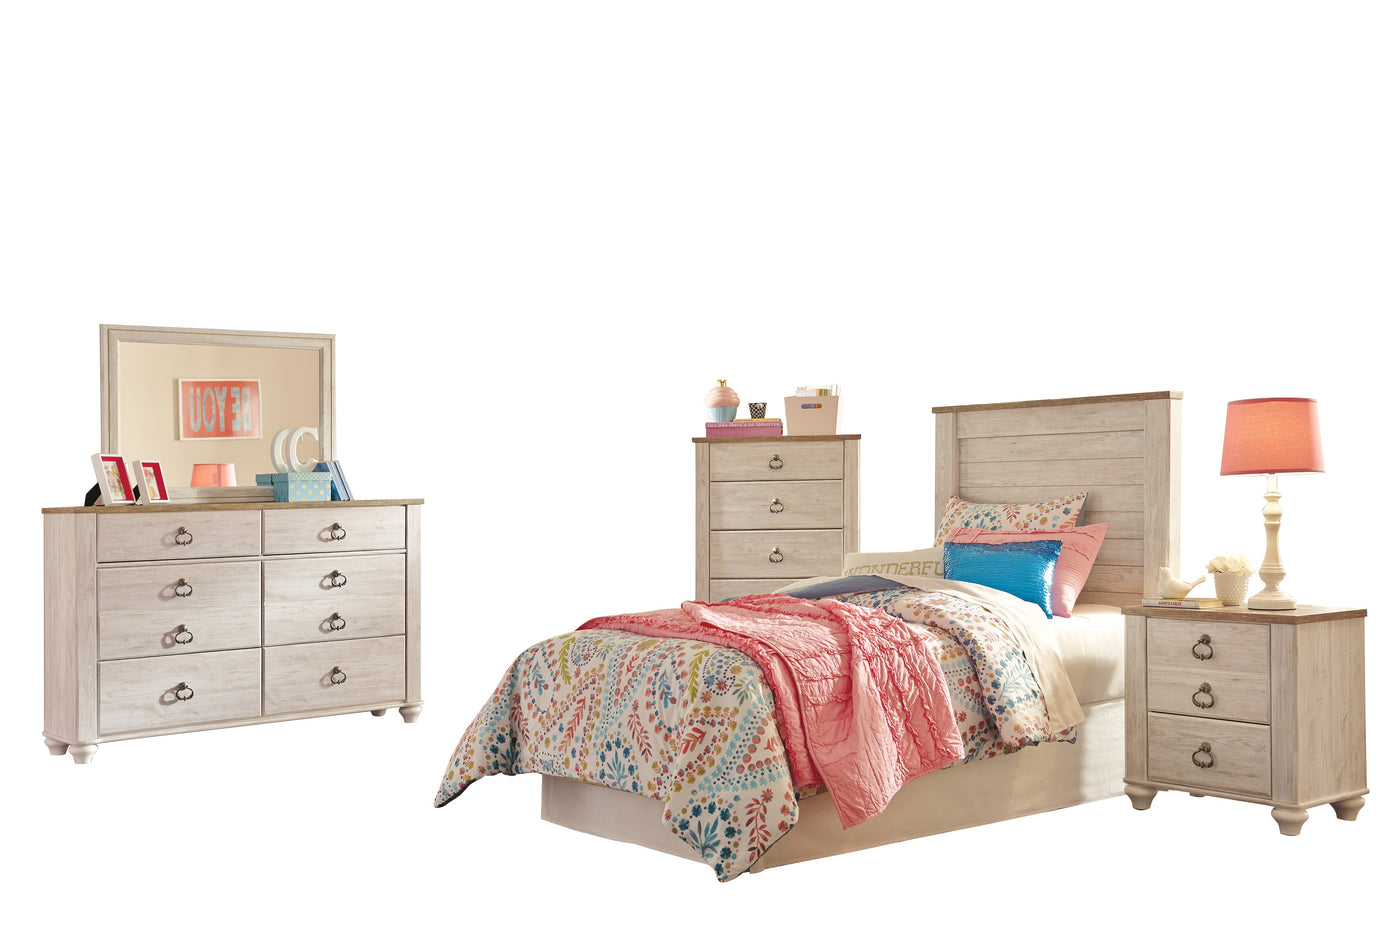 Ashley Willowton 5 Pc Twin Panel Bedroom Set With Chest In White The Furniture Space